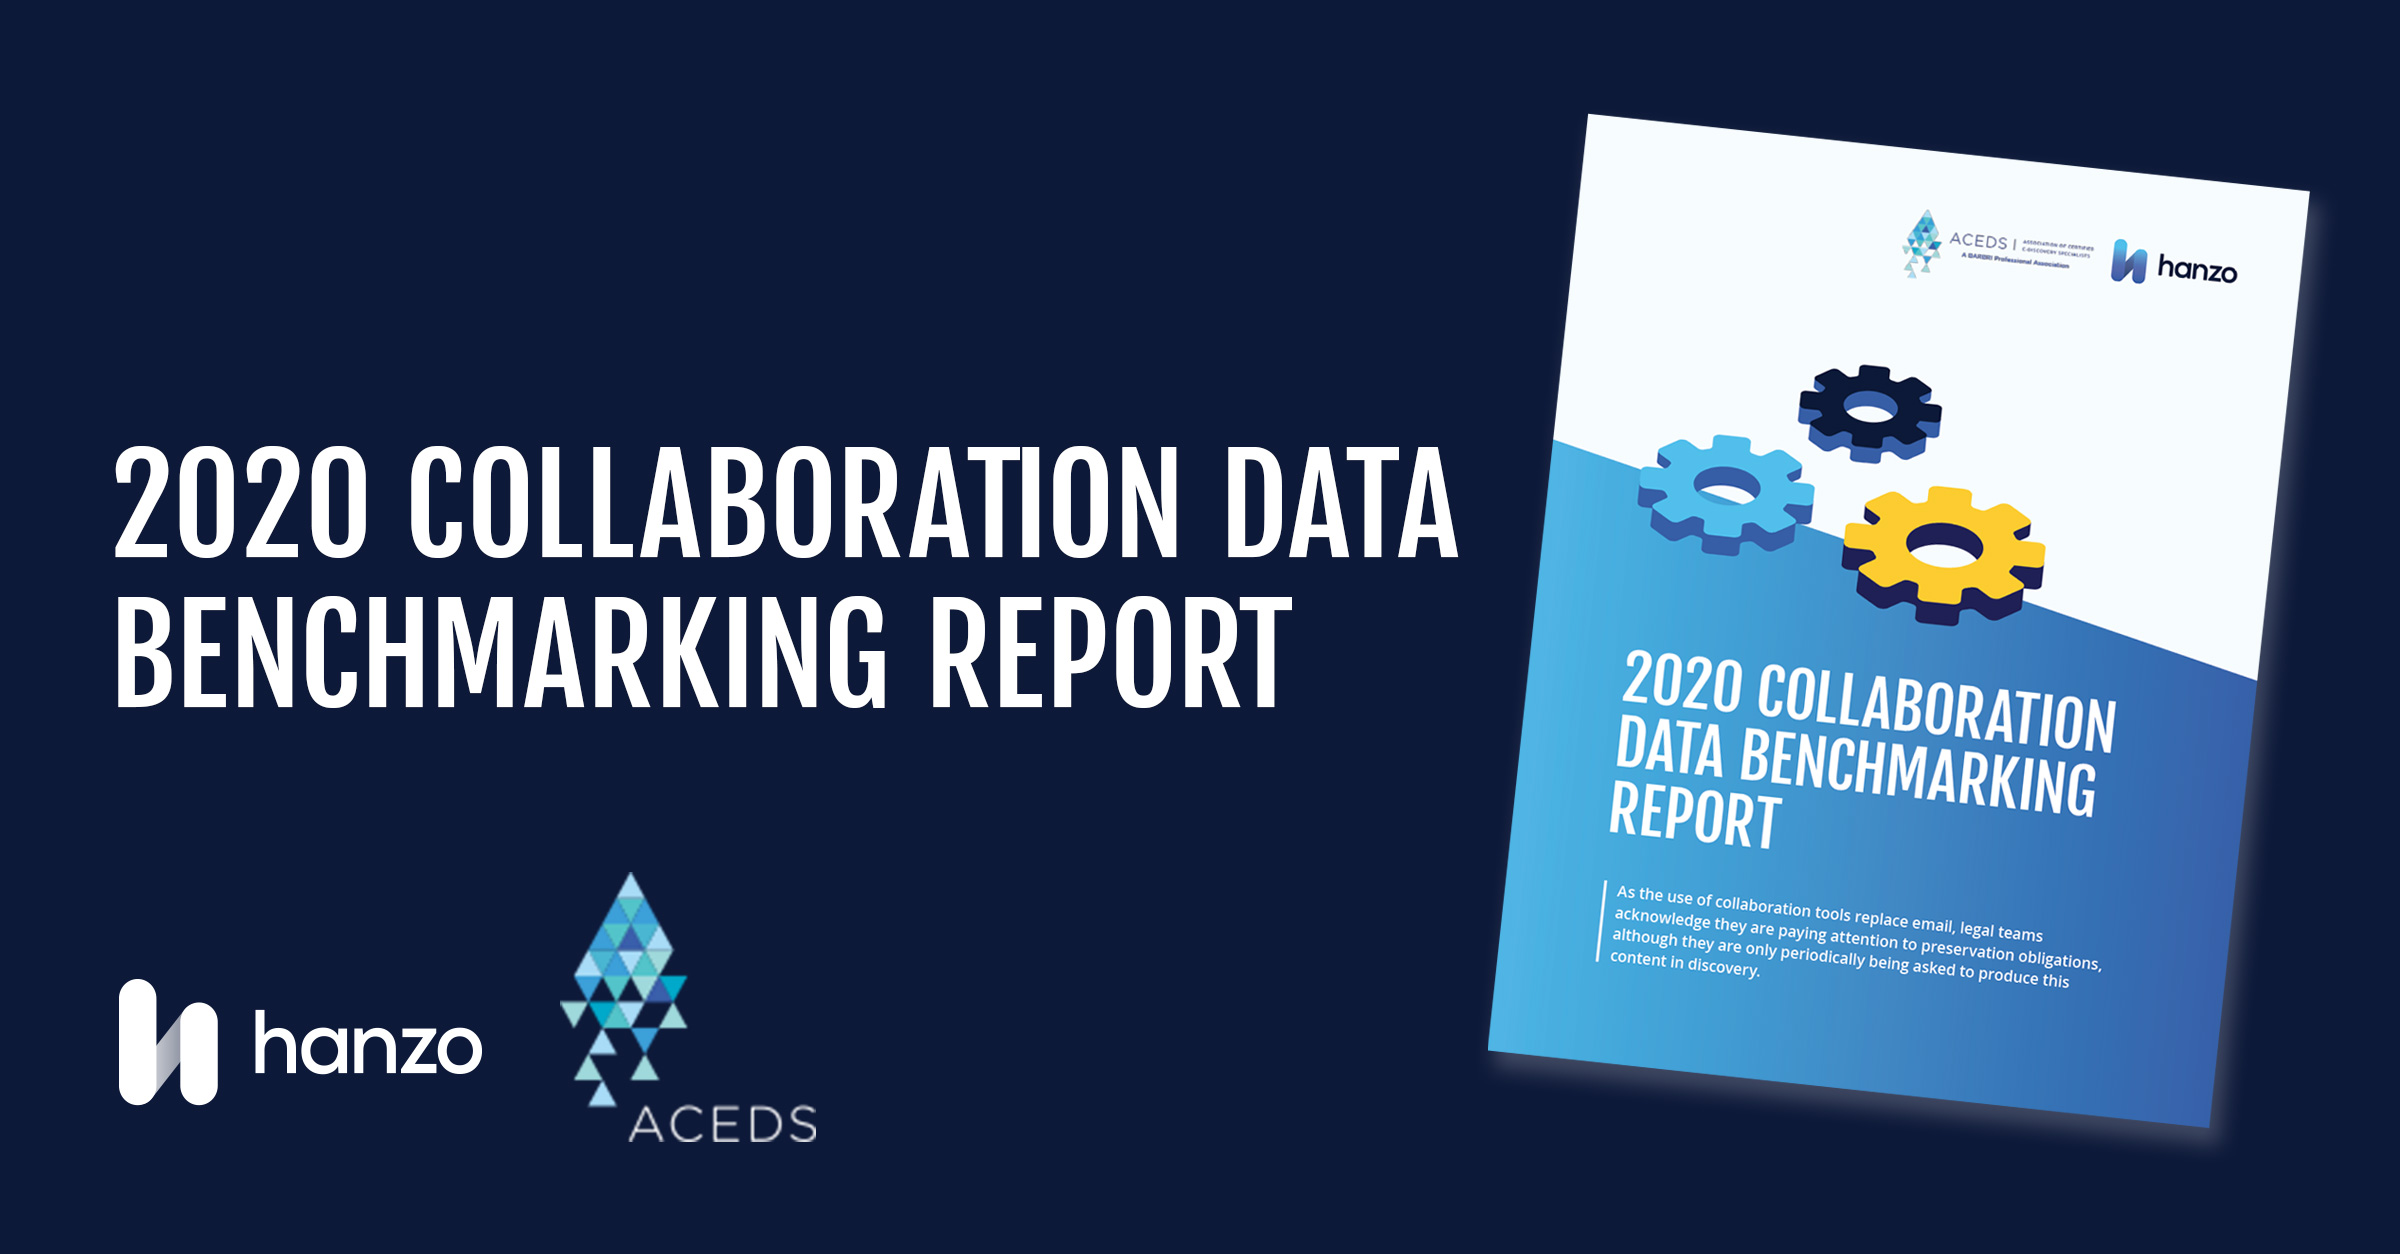 2020-11-hanzo-aceds-eb-collaboration-benchmarking-report-social-2